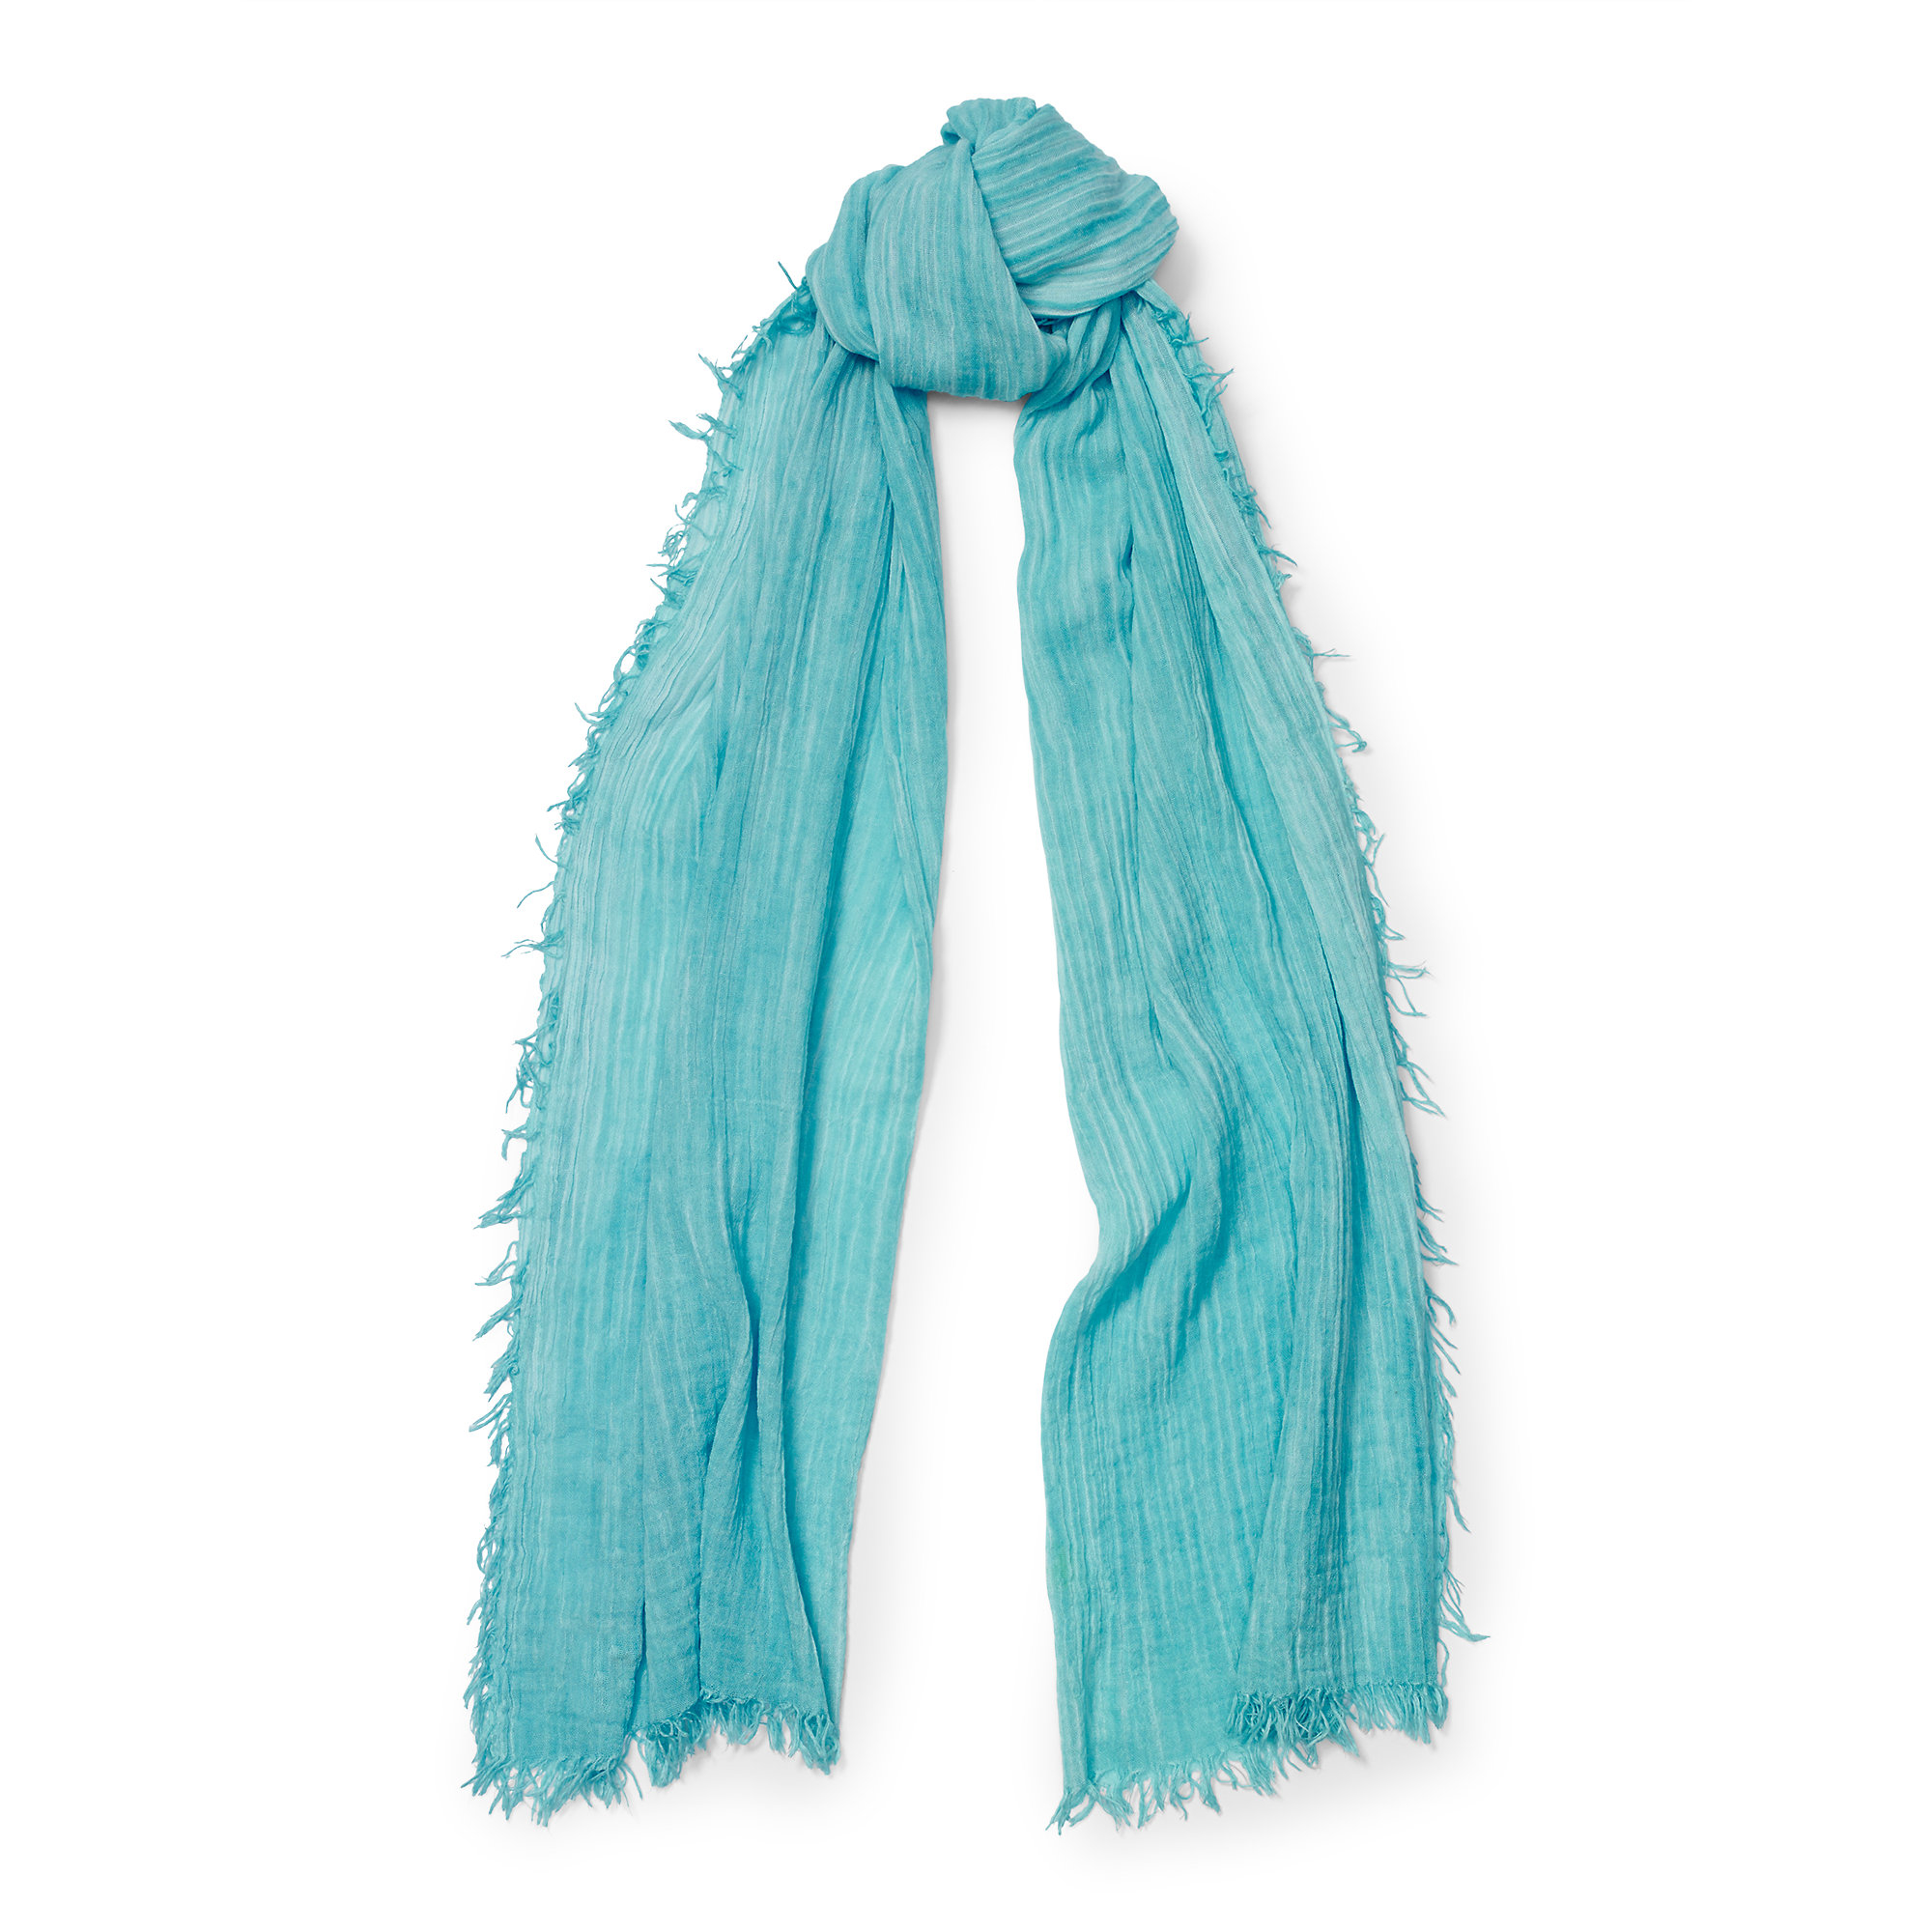 Lyst - Polo Ralph Lauren Crinkled Gossamer Cotton Scarf in Blue ef35538c6af